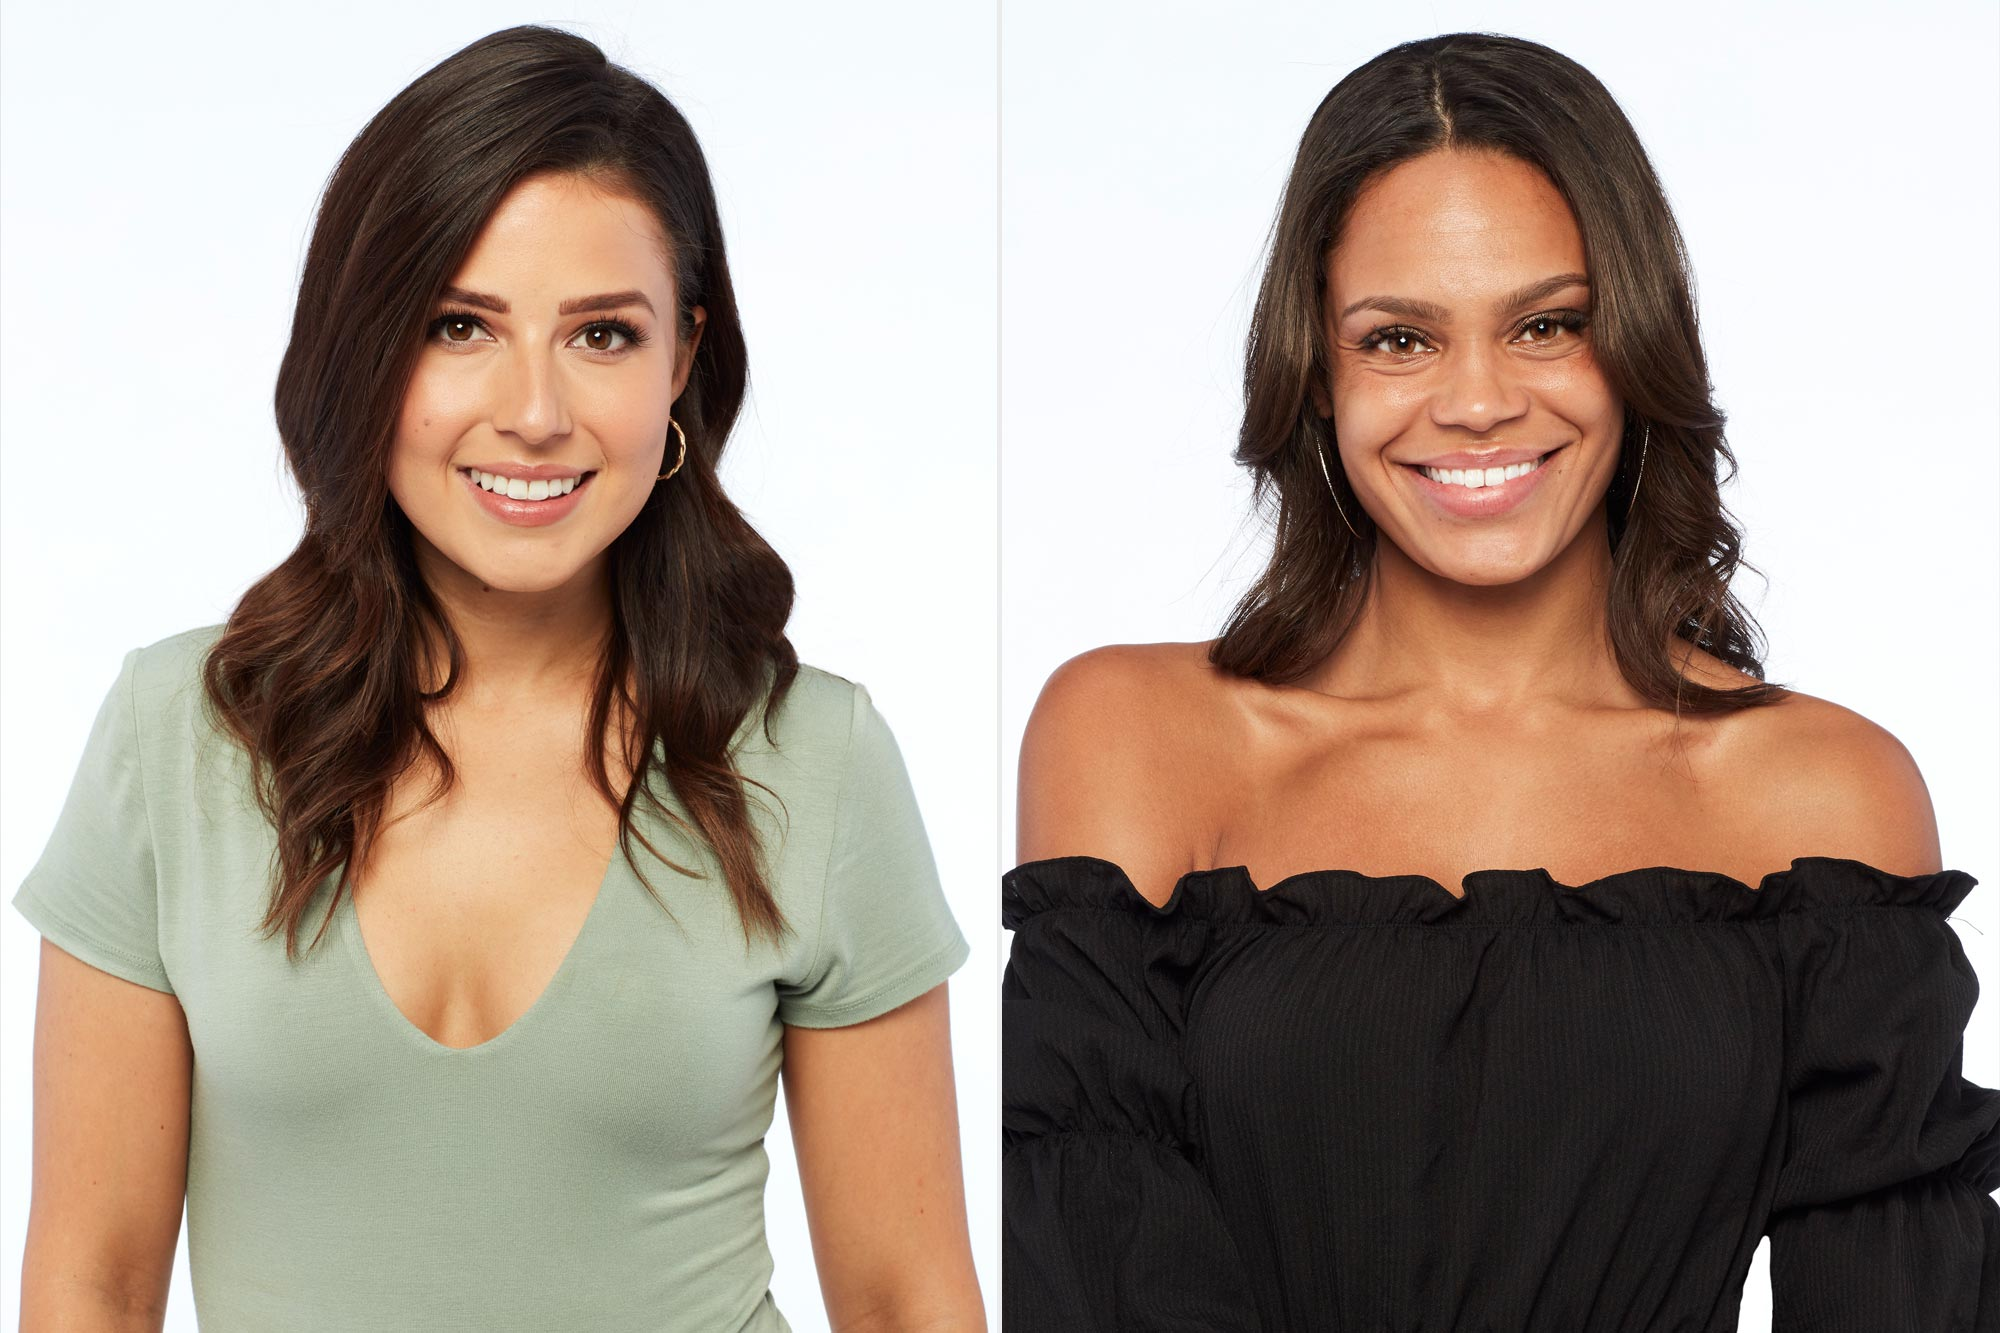 THE BACHELOR - Katie and Michelle